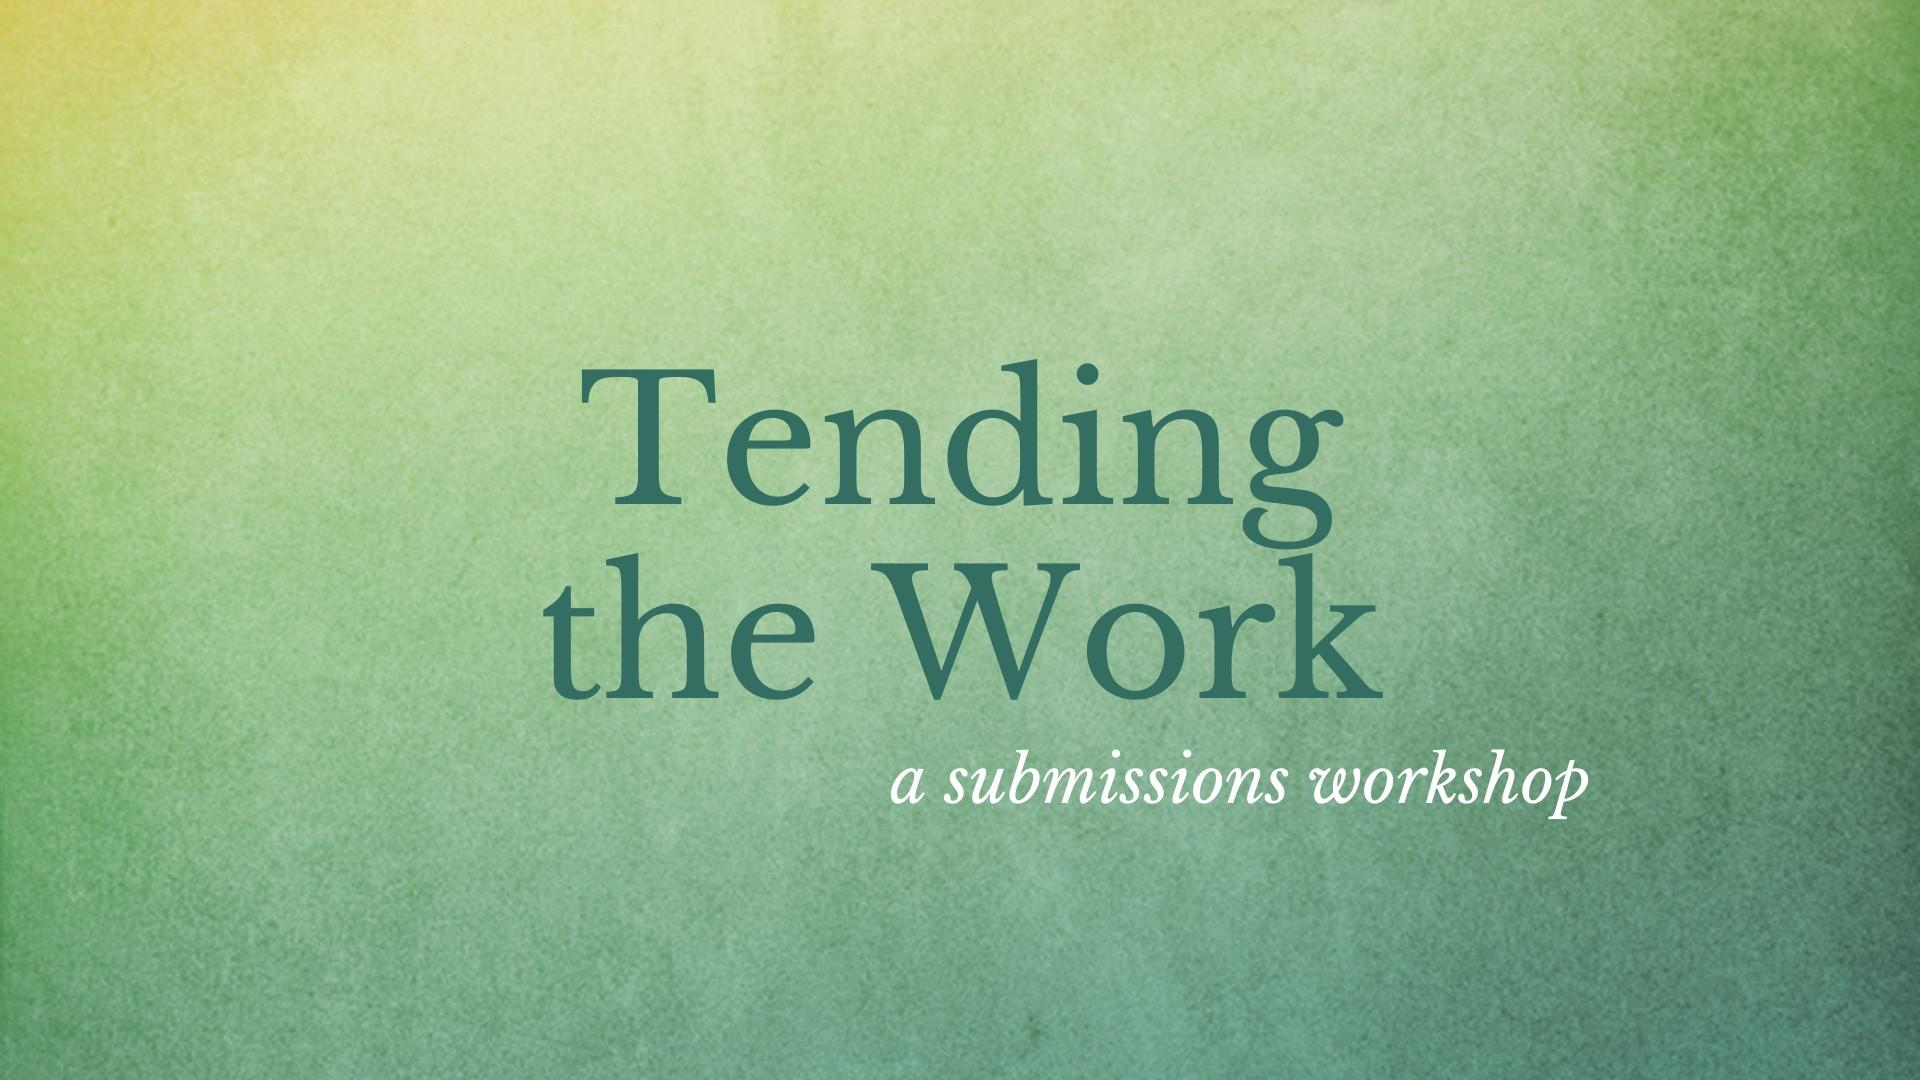 Tending the Work - submissions workshop